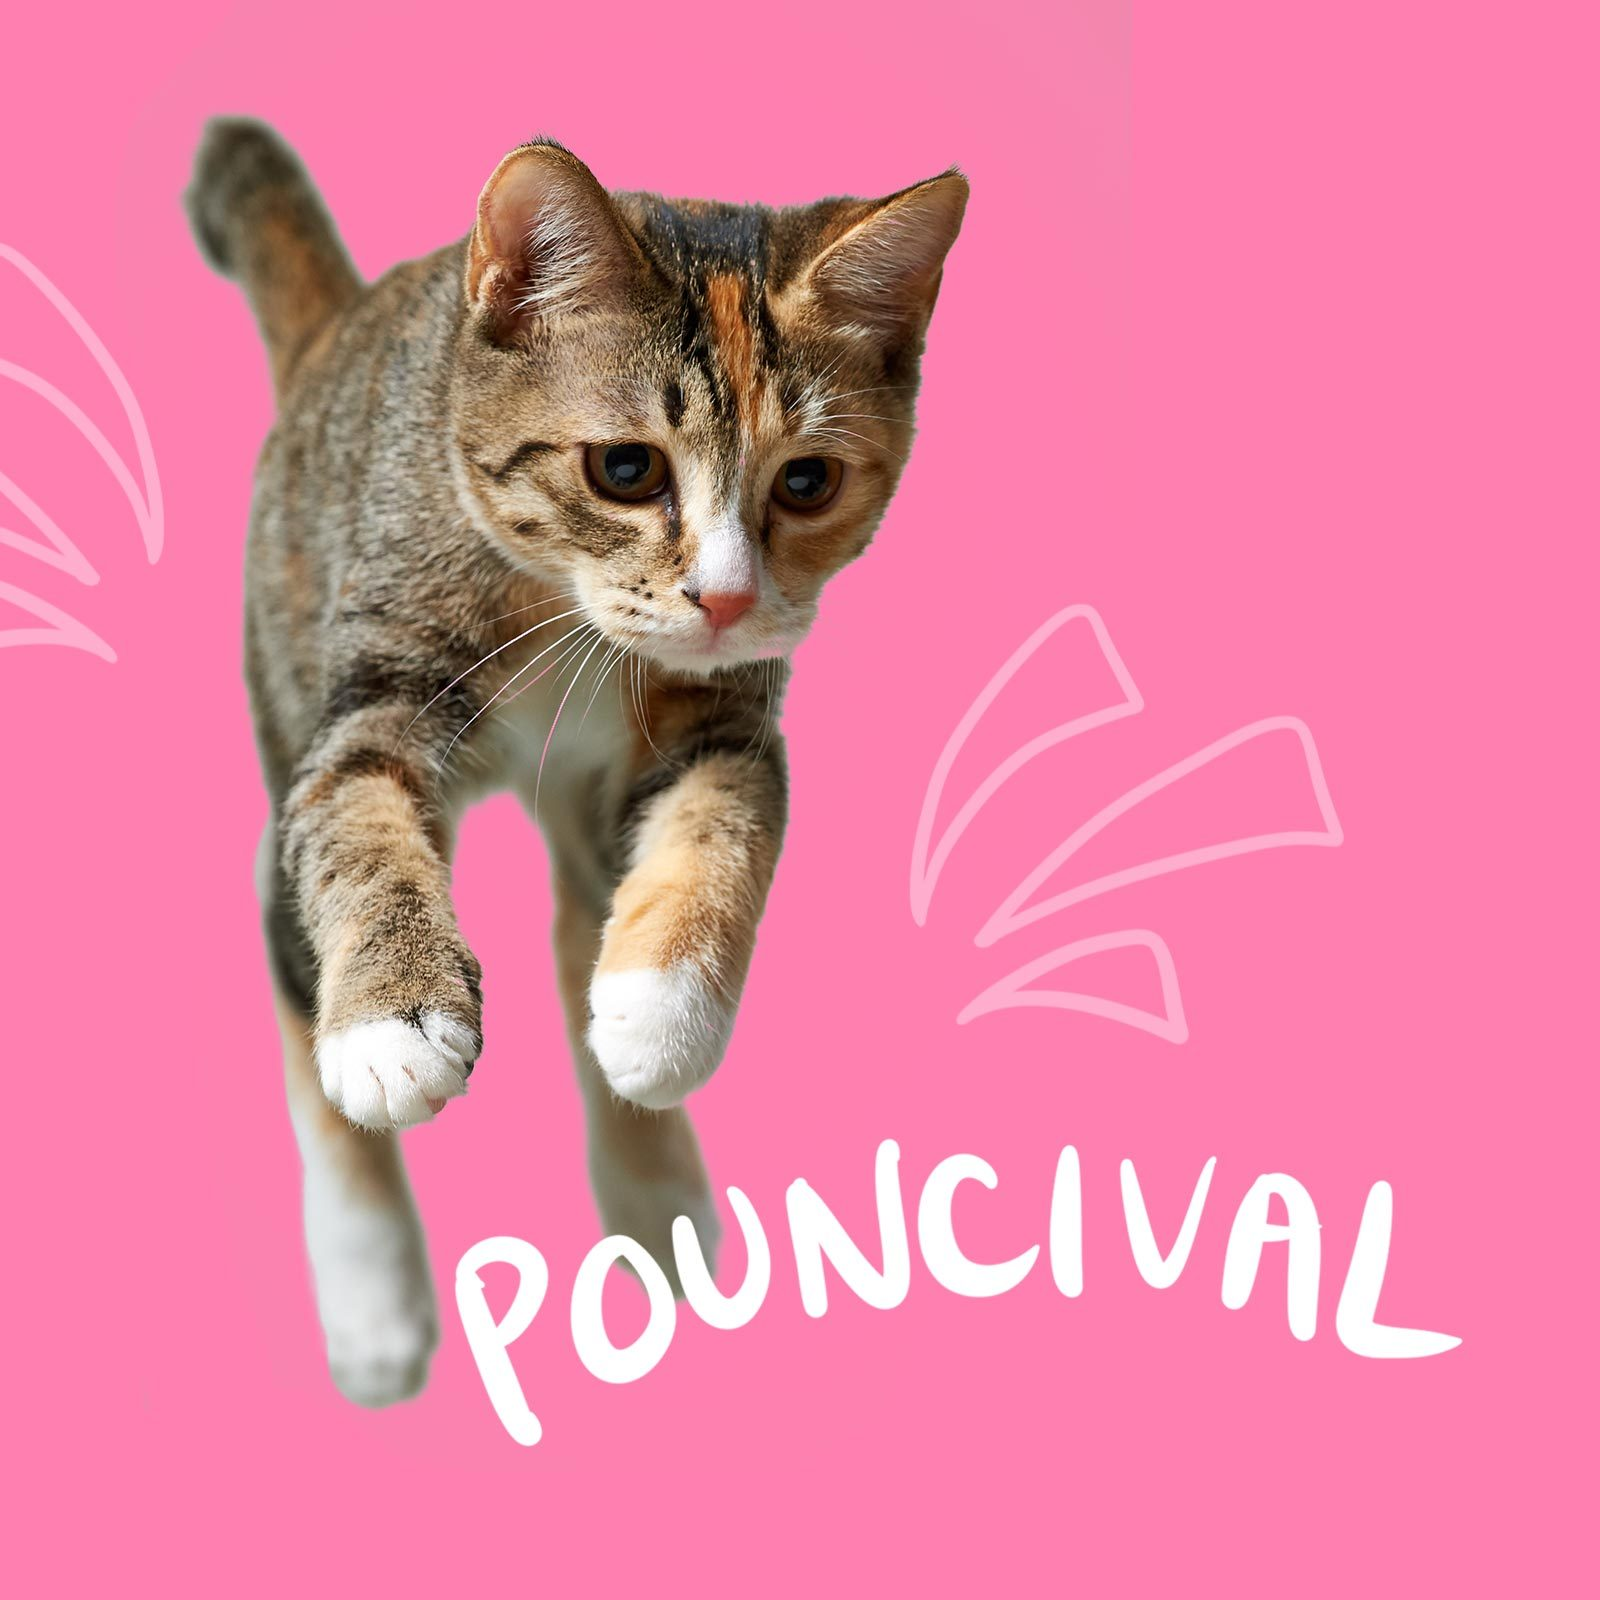 Jumping cat named Pouncival